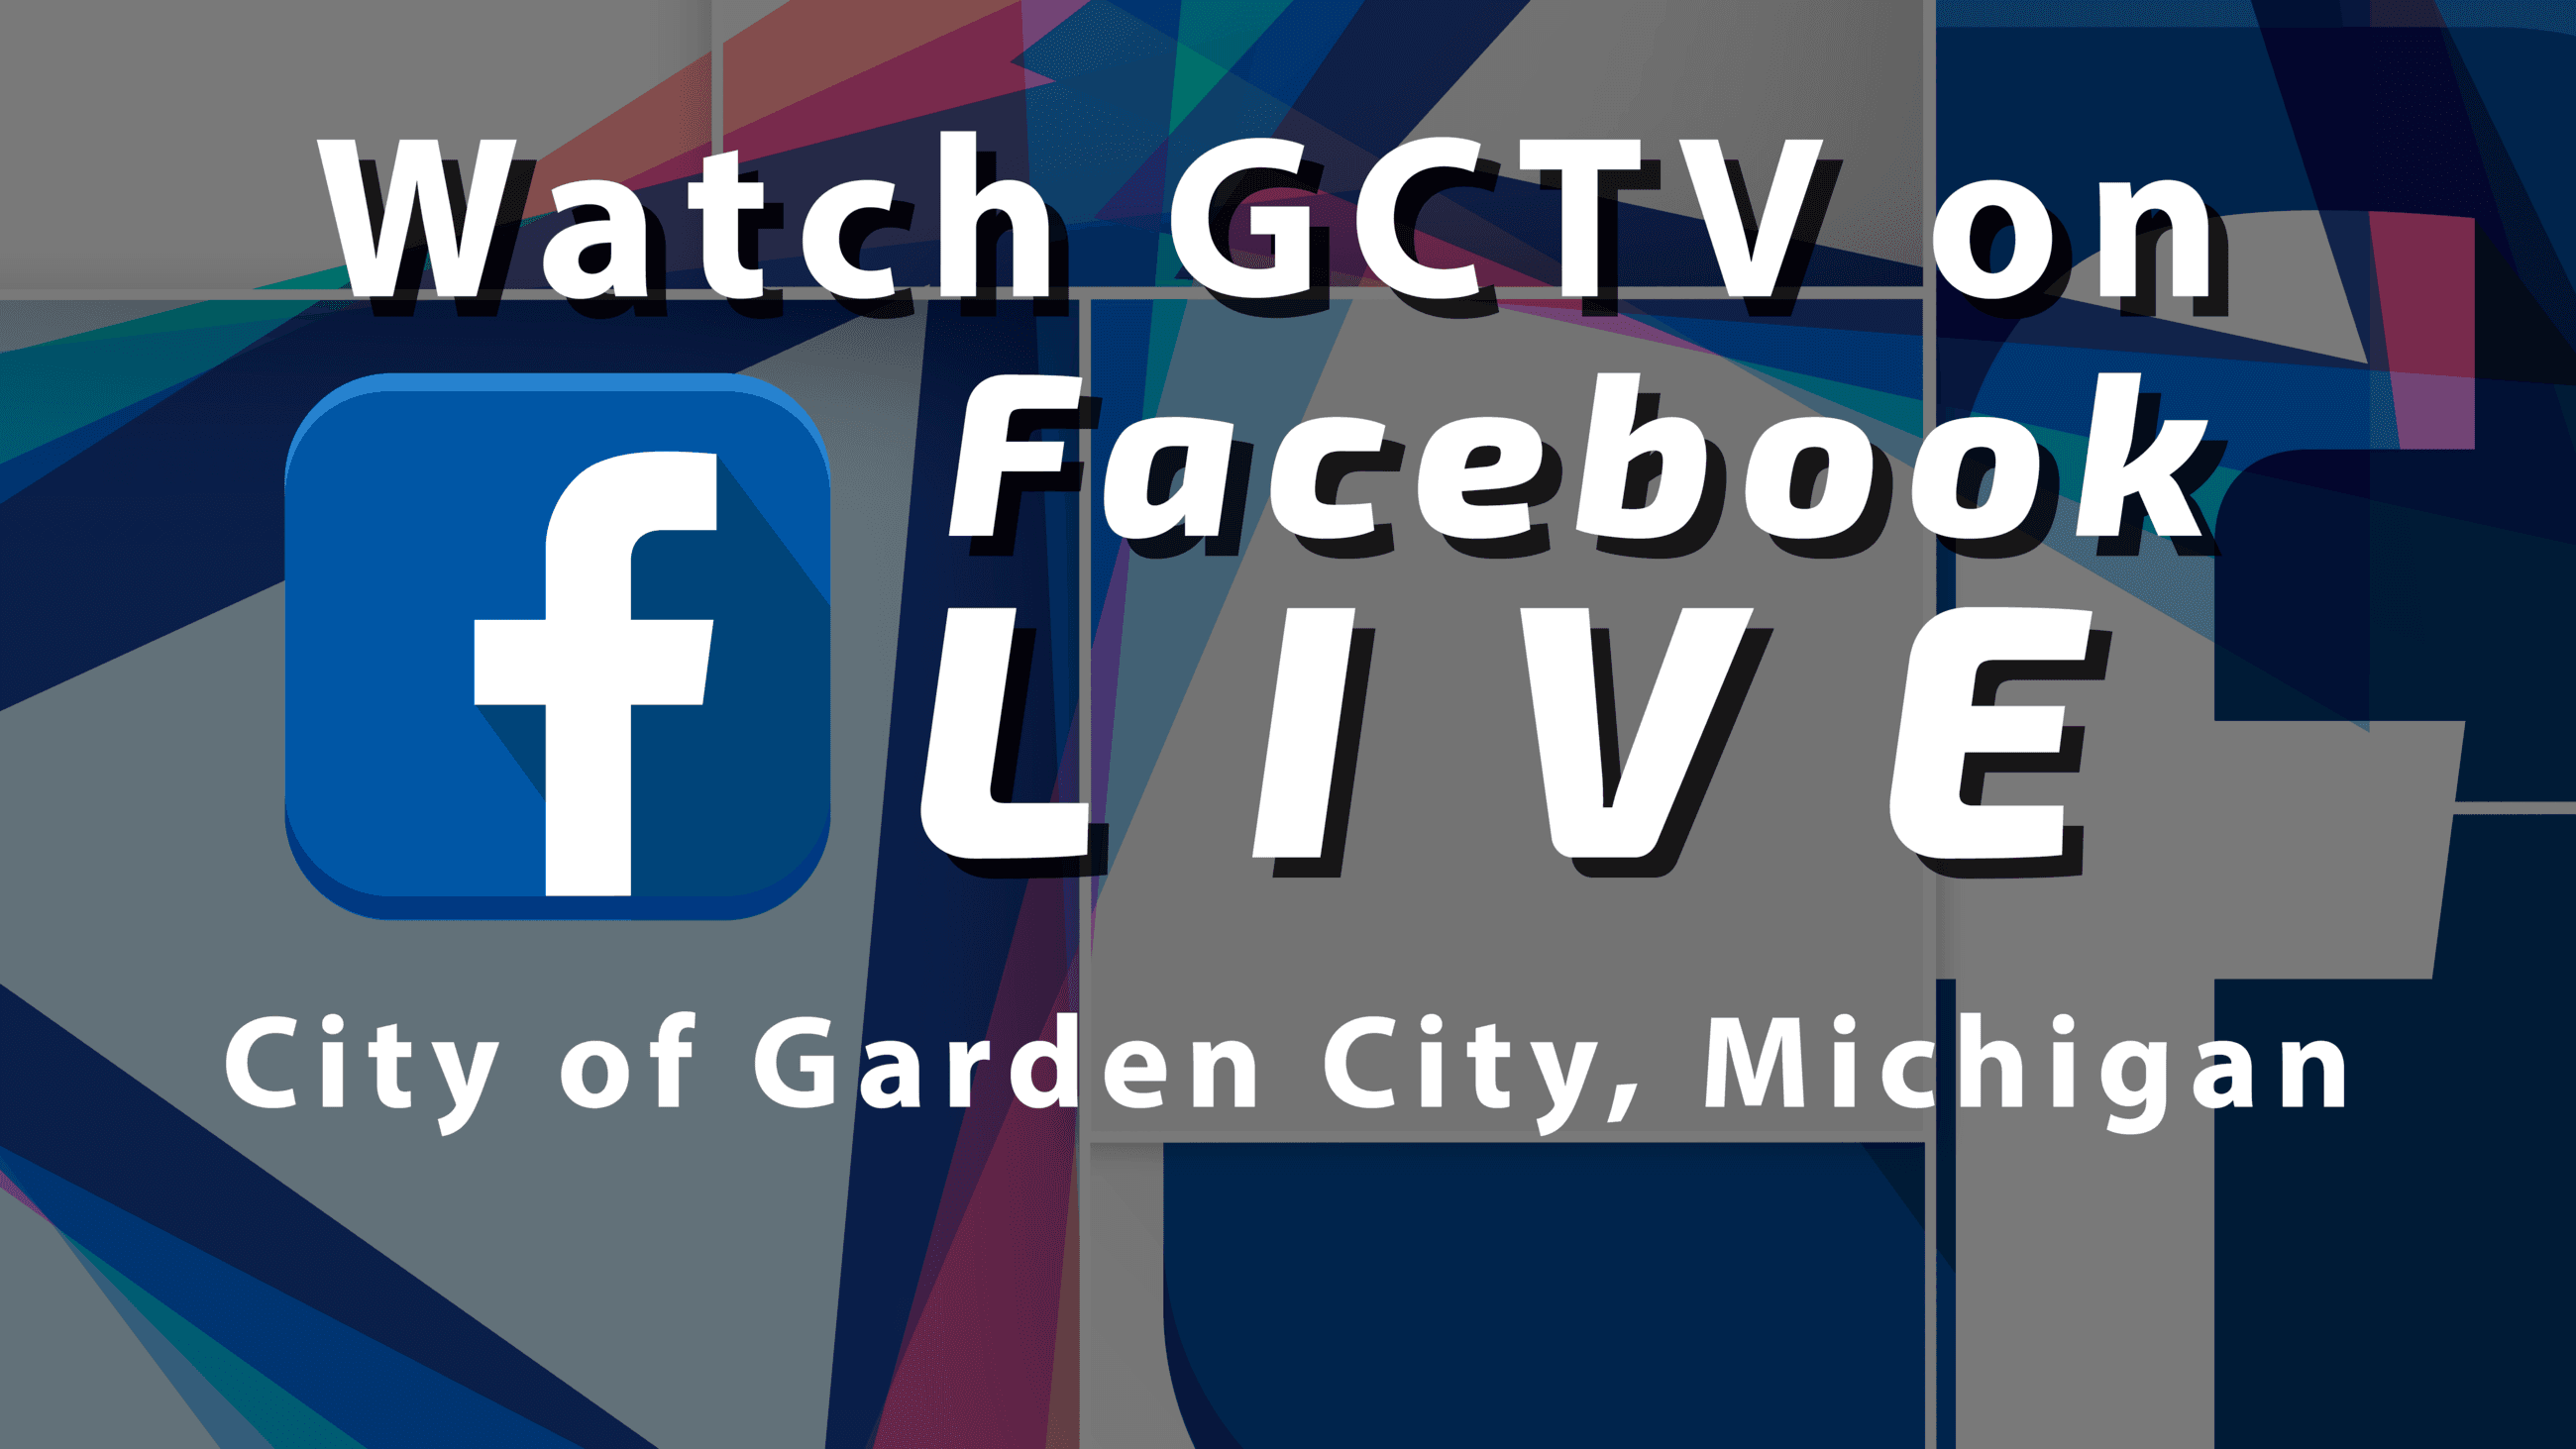 Watch GCTV on Facebook